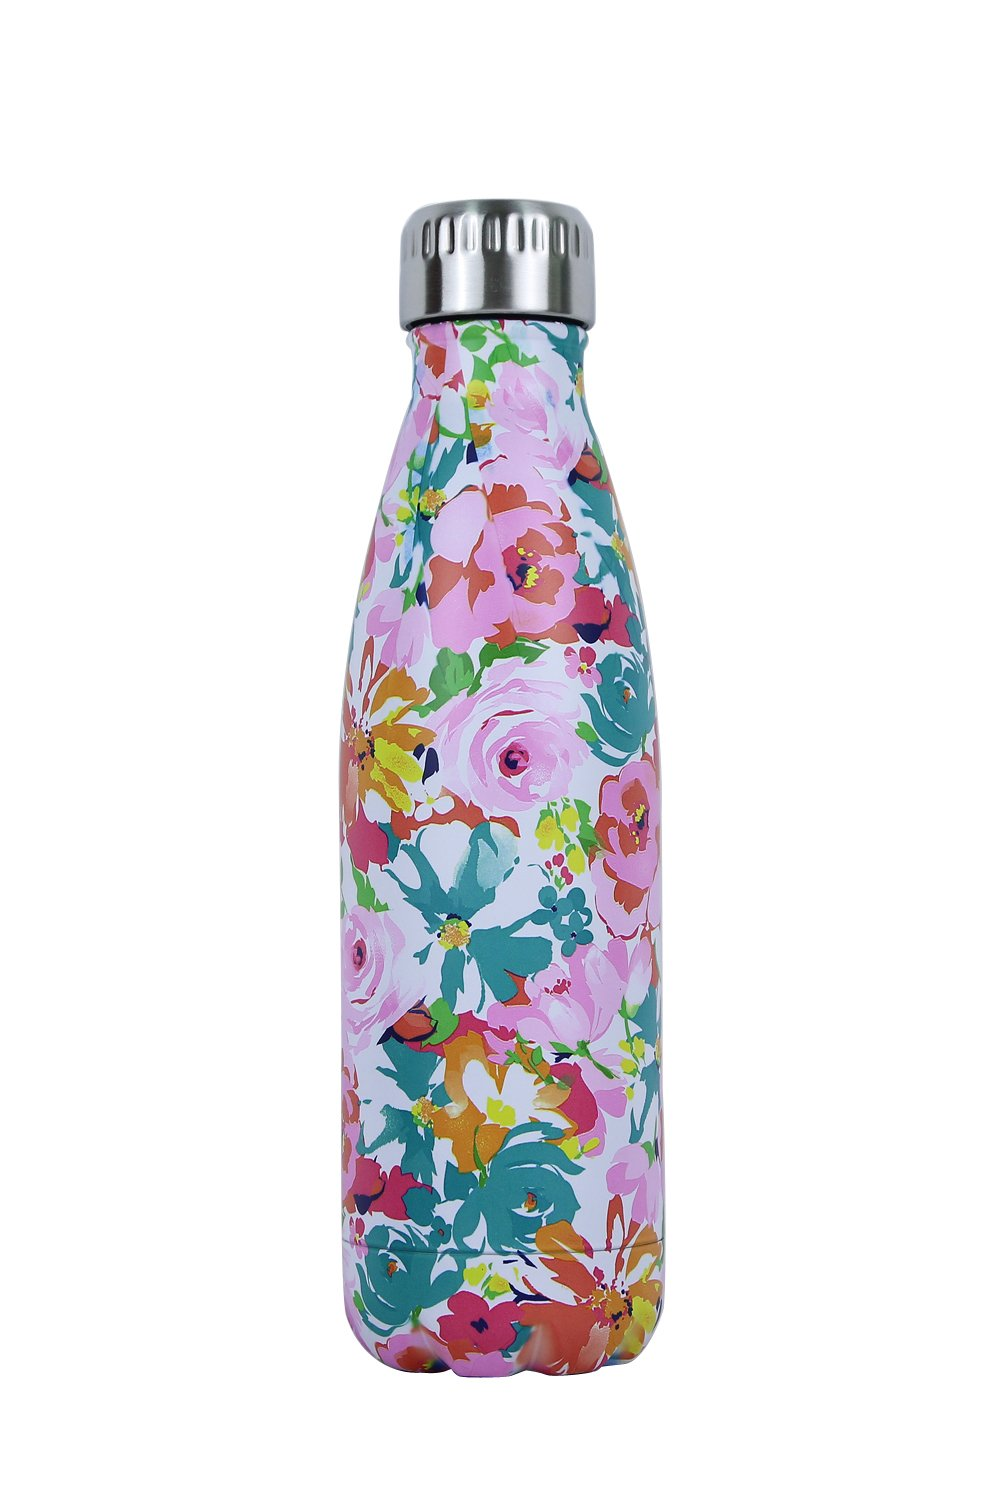 Double Walled Vacuum Flask - Insulated Stainless Steel Water Bottle - Leak Proof Cola Shape Portable Water Bottle - No Sweat,Hot/Cold 24 hours,17 Oz (500 ml) (Flower)